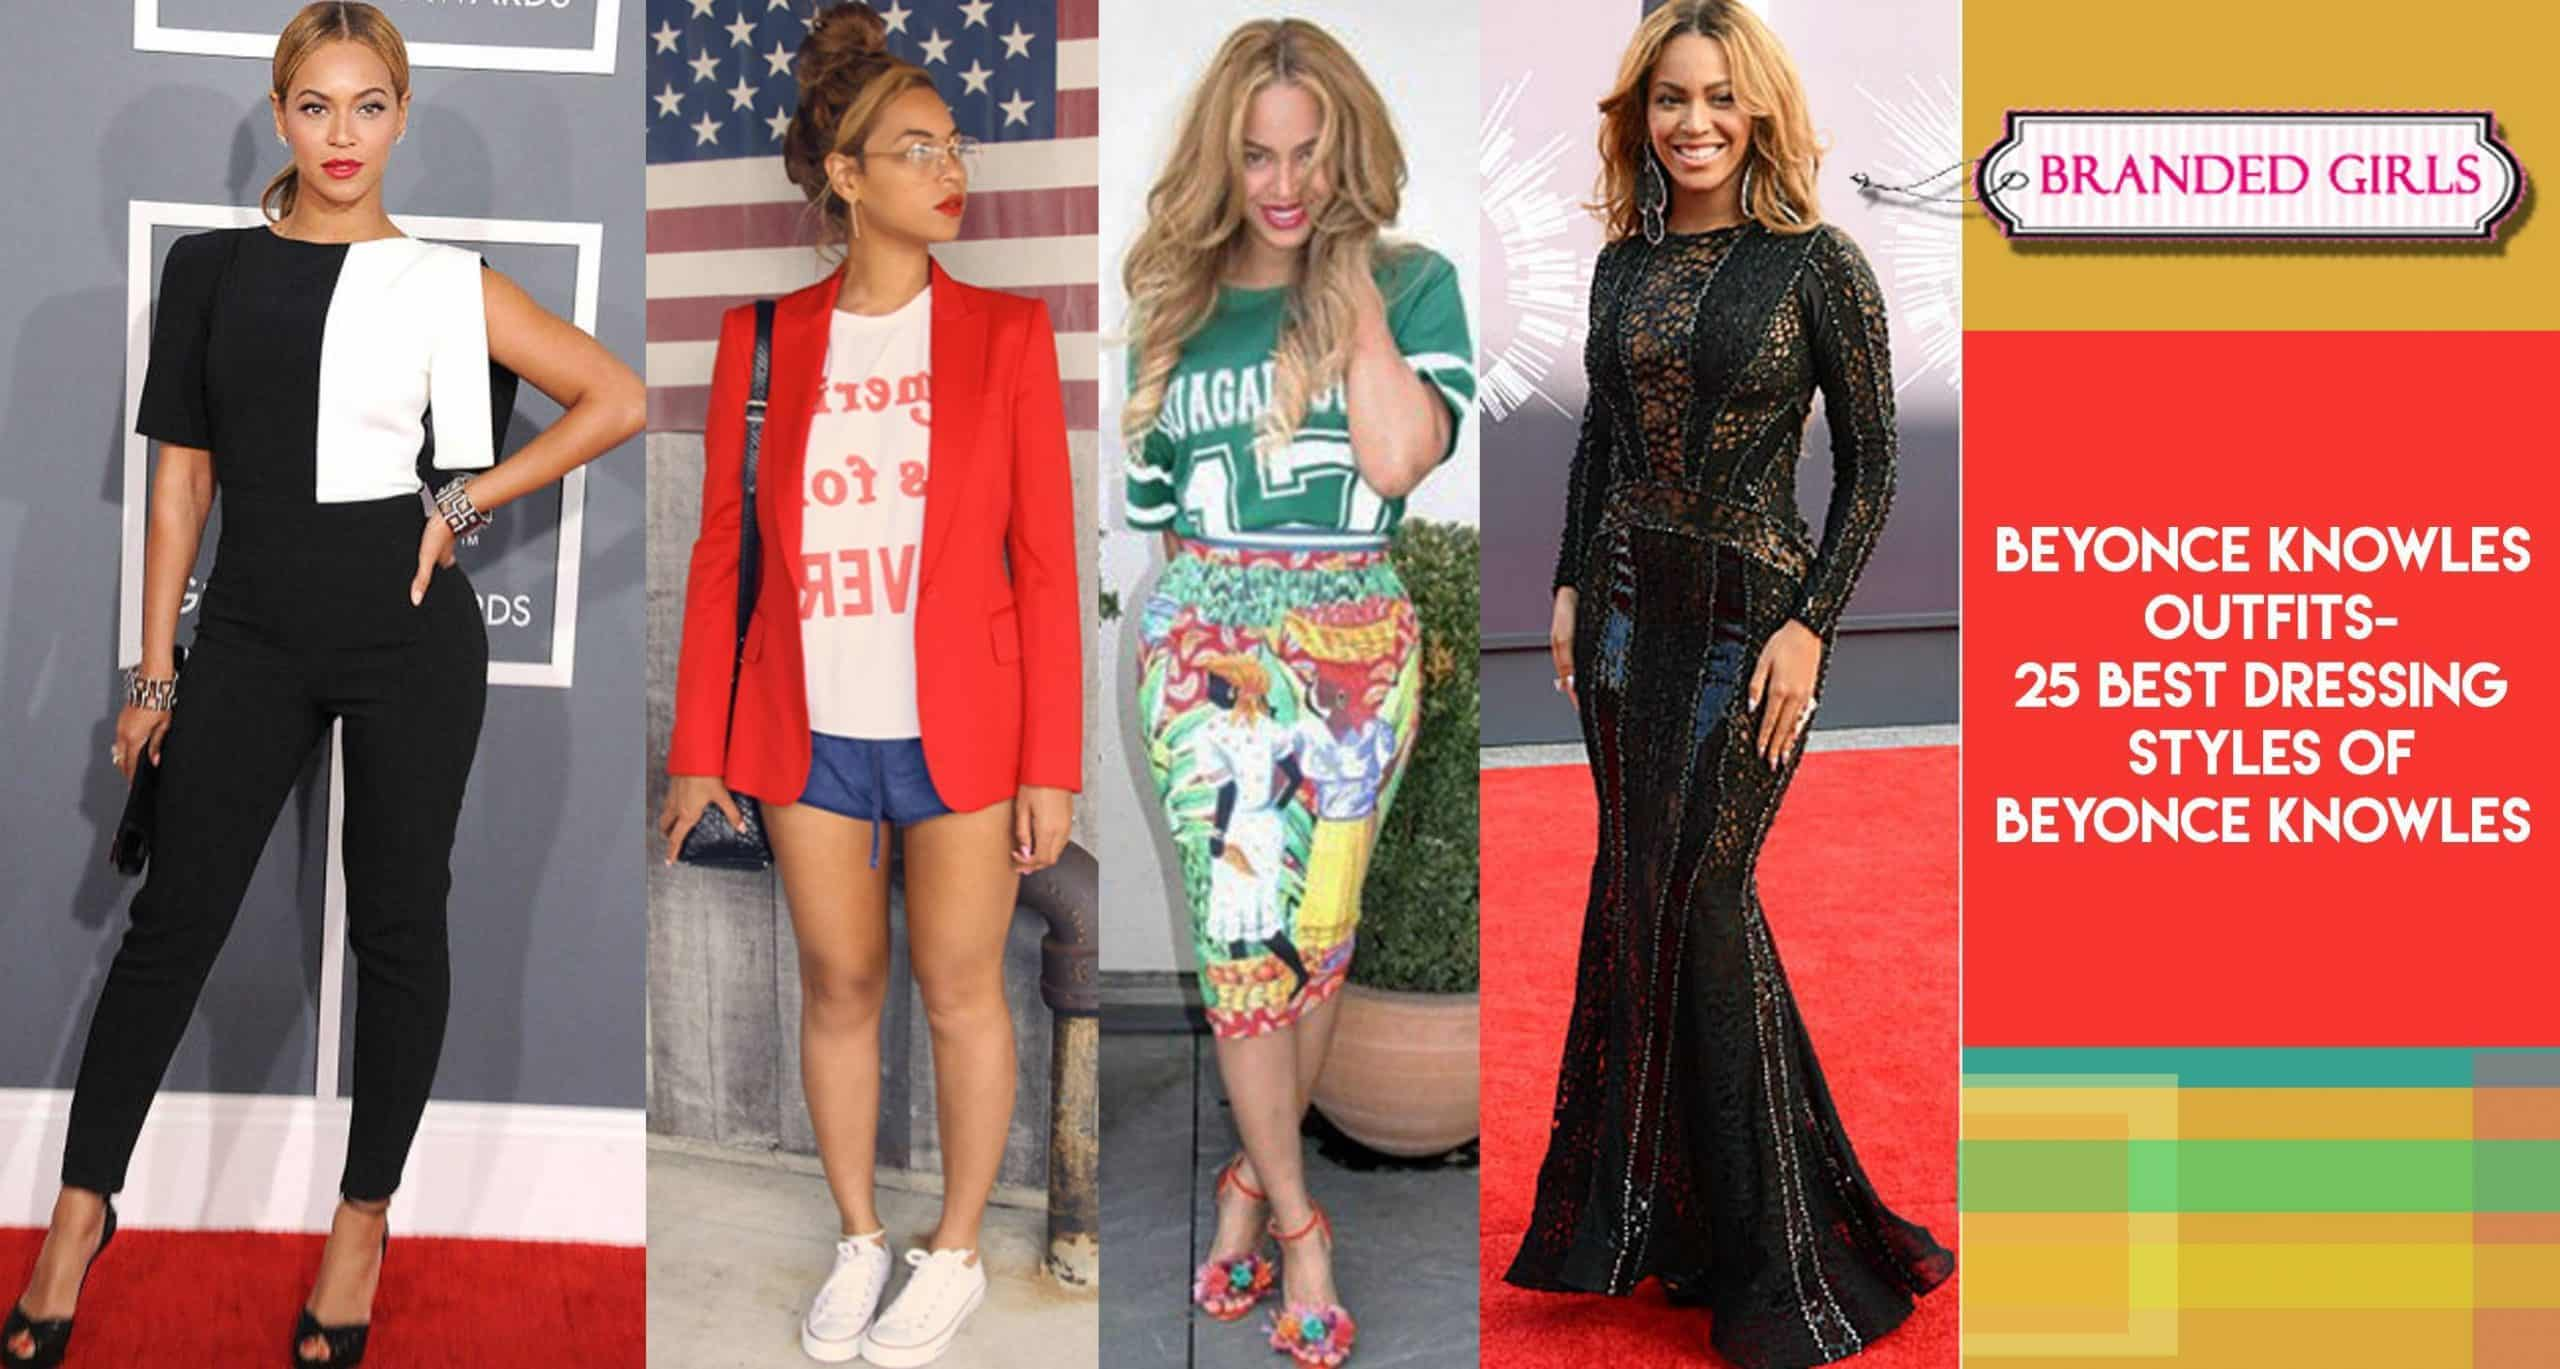 beyonce-outfits Beyonce Outfits - 25 Best Dressing Styles of Beyoncé to Copy